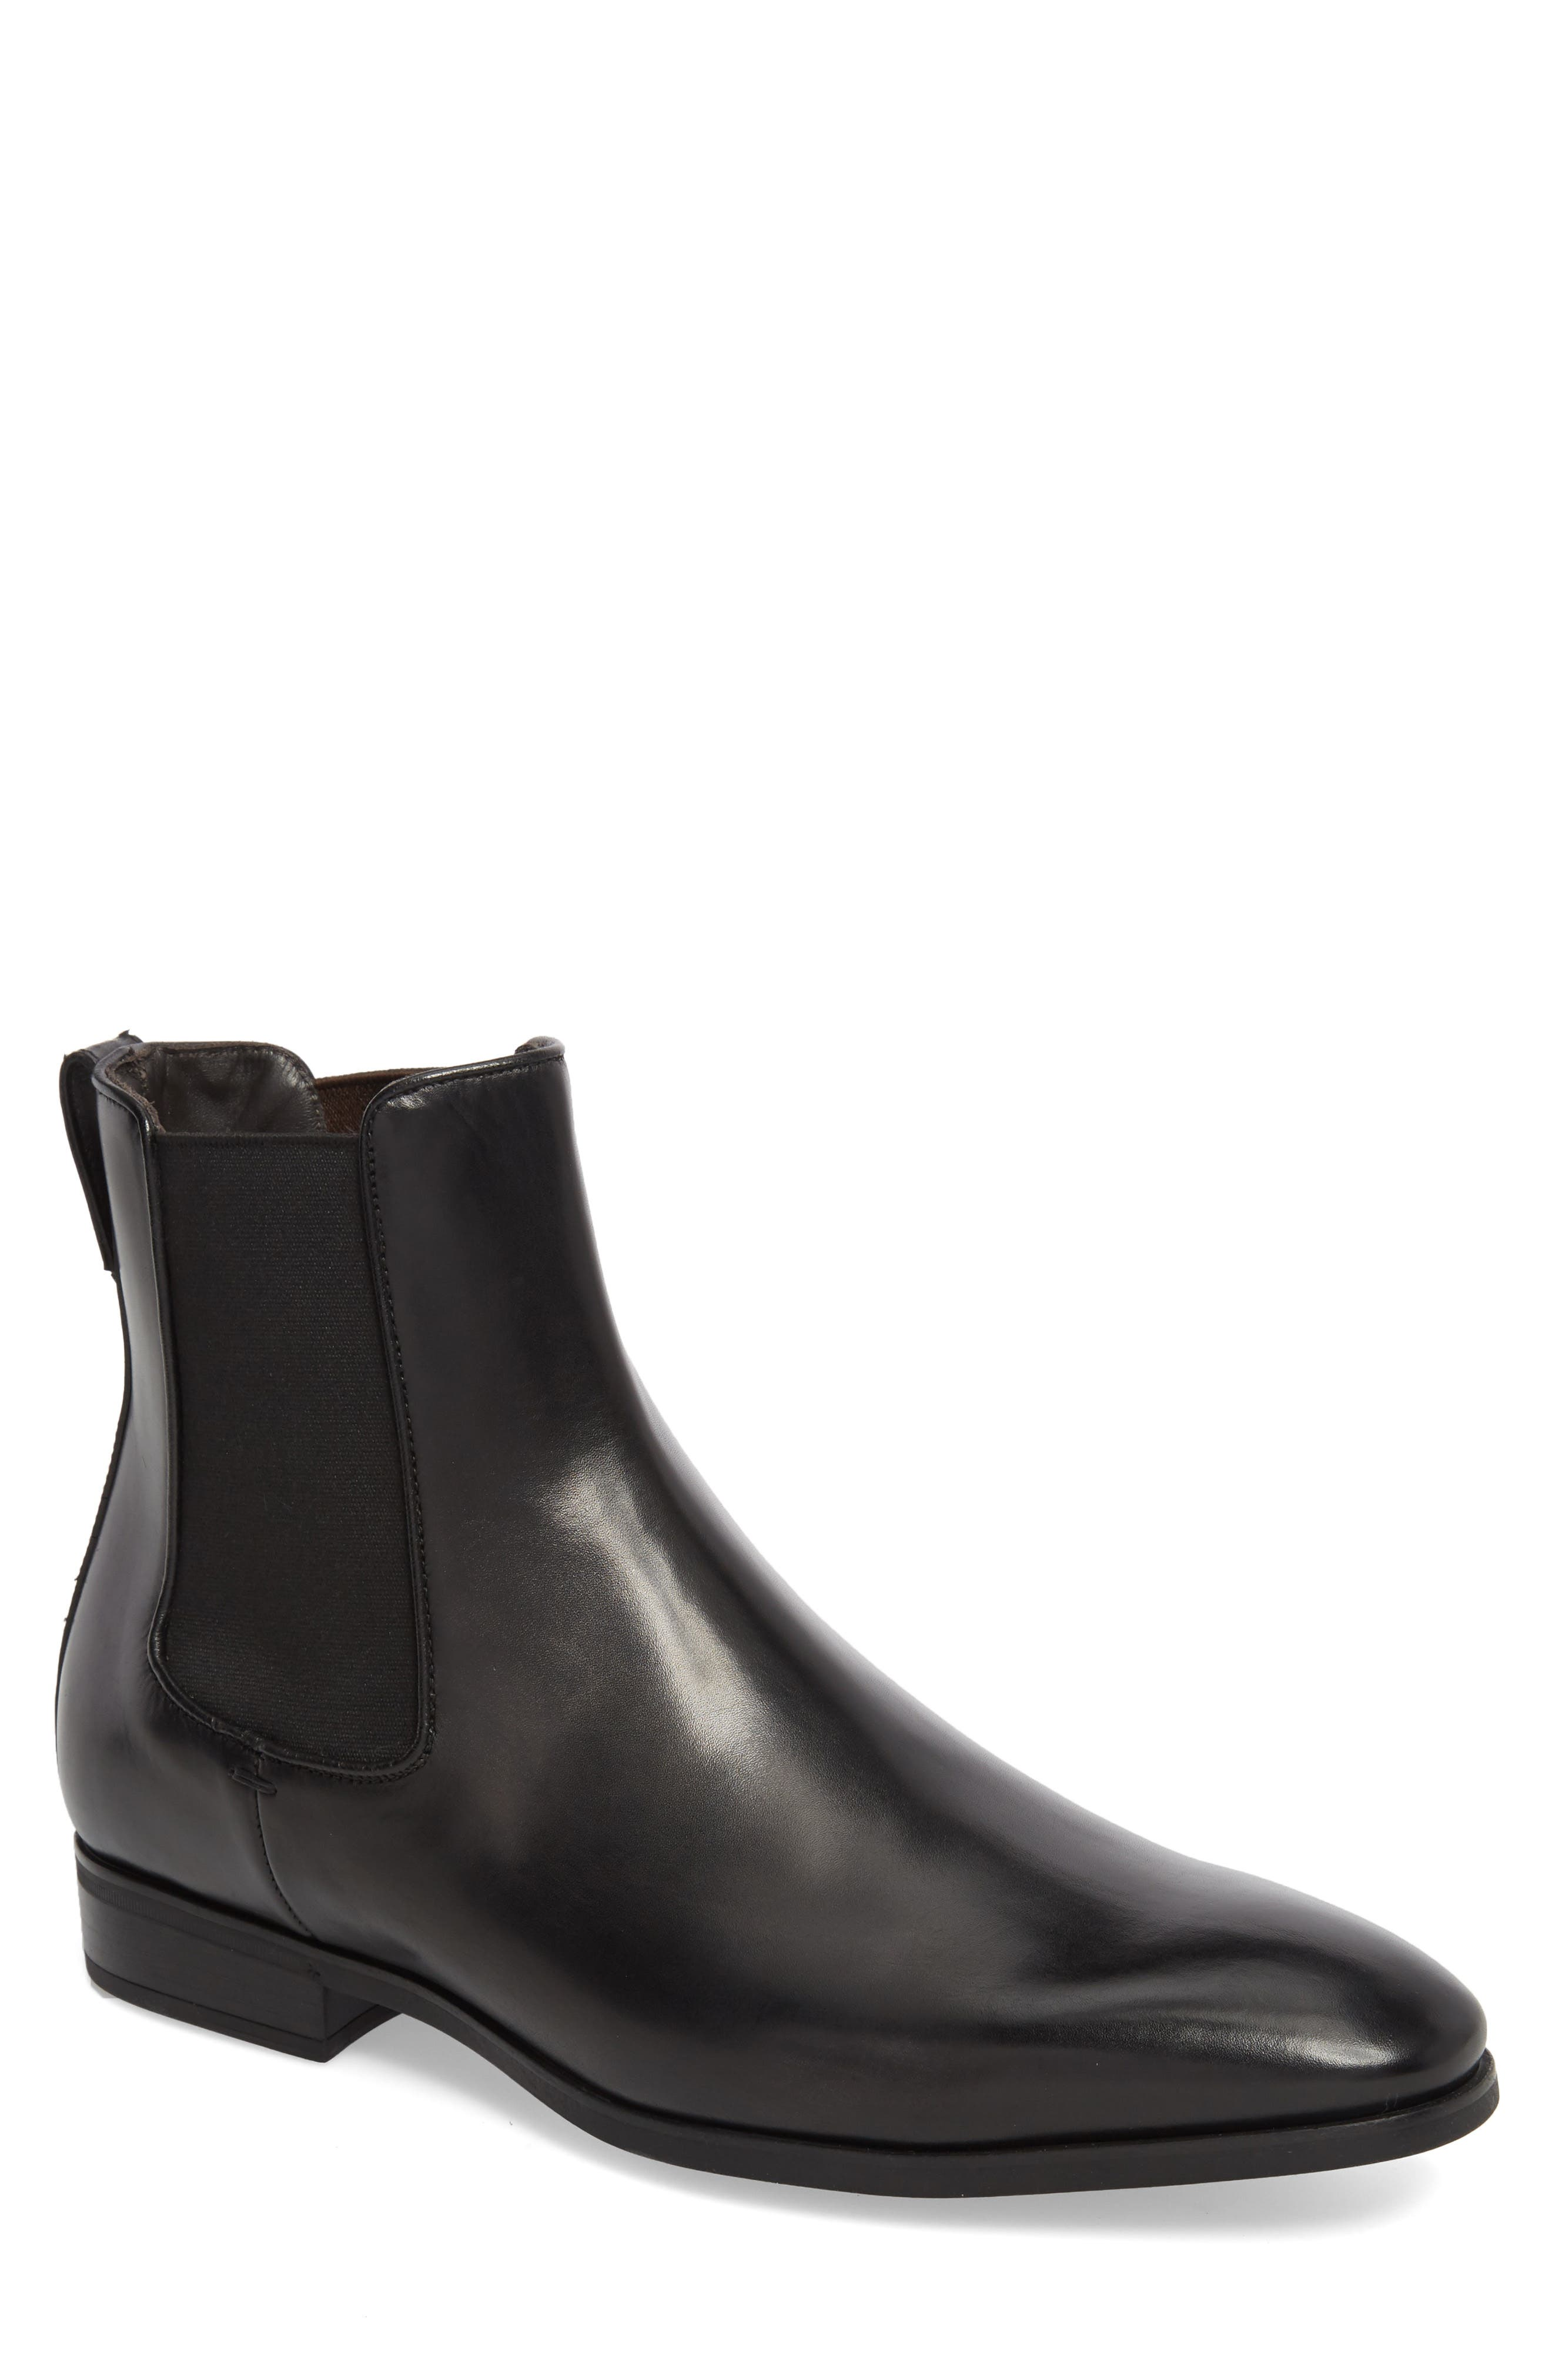 TO BOOT NEW YORK Aldrich Mid Chelsea Boot, Main, color, BLACK/ BLACK LEATHER